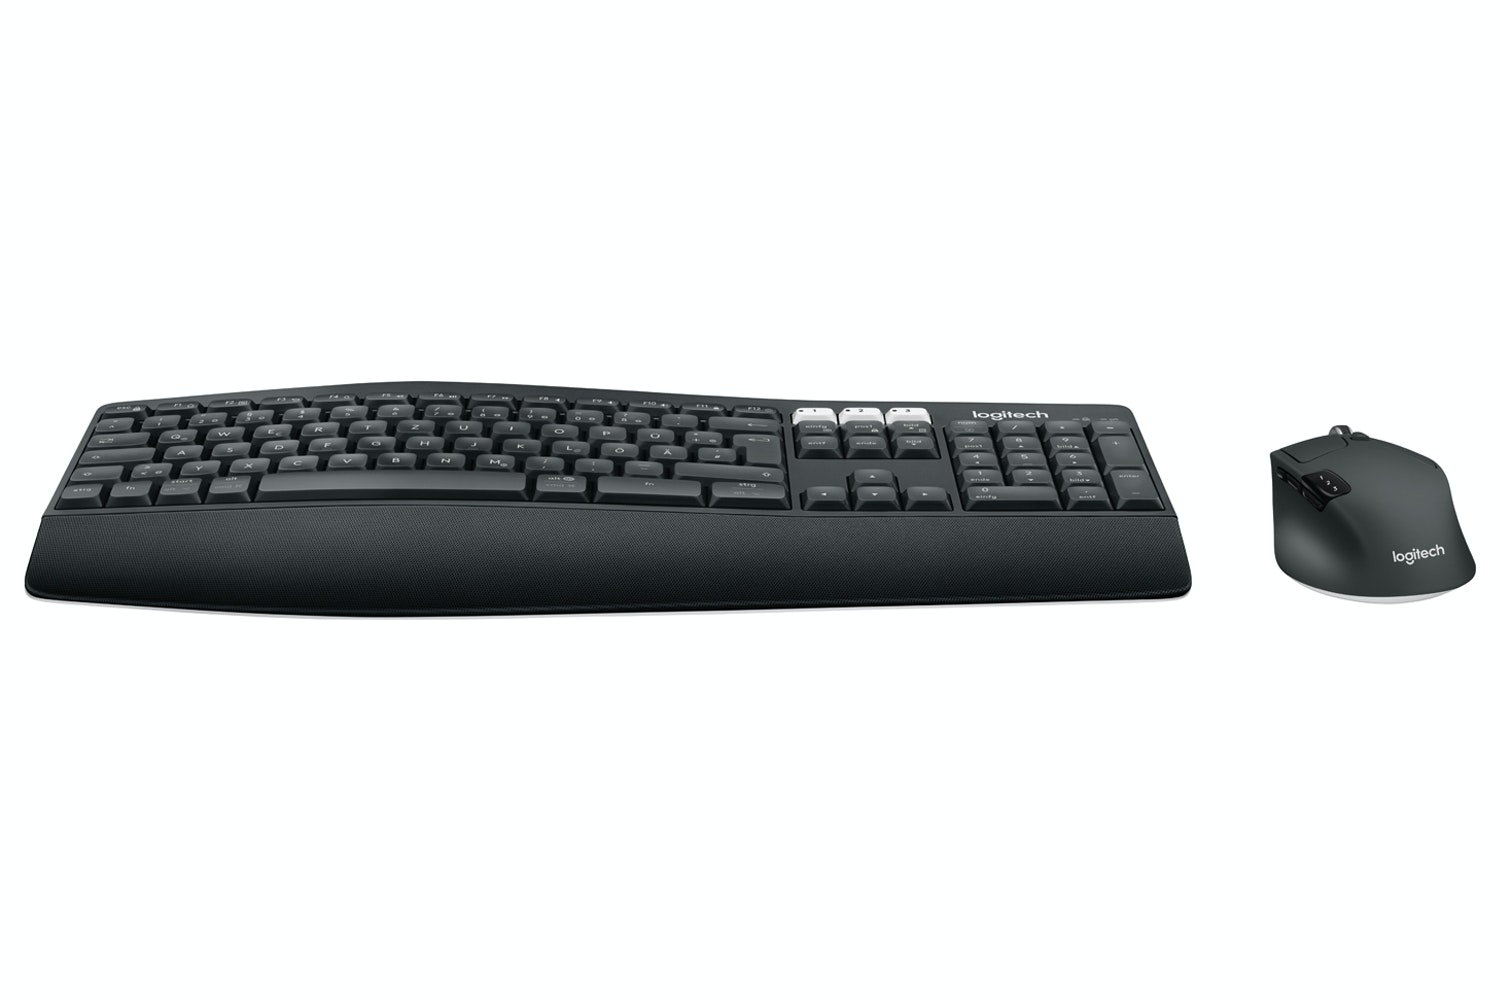 Logitech MK850 Wireless Keyboard & Mouse